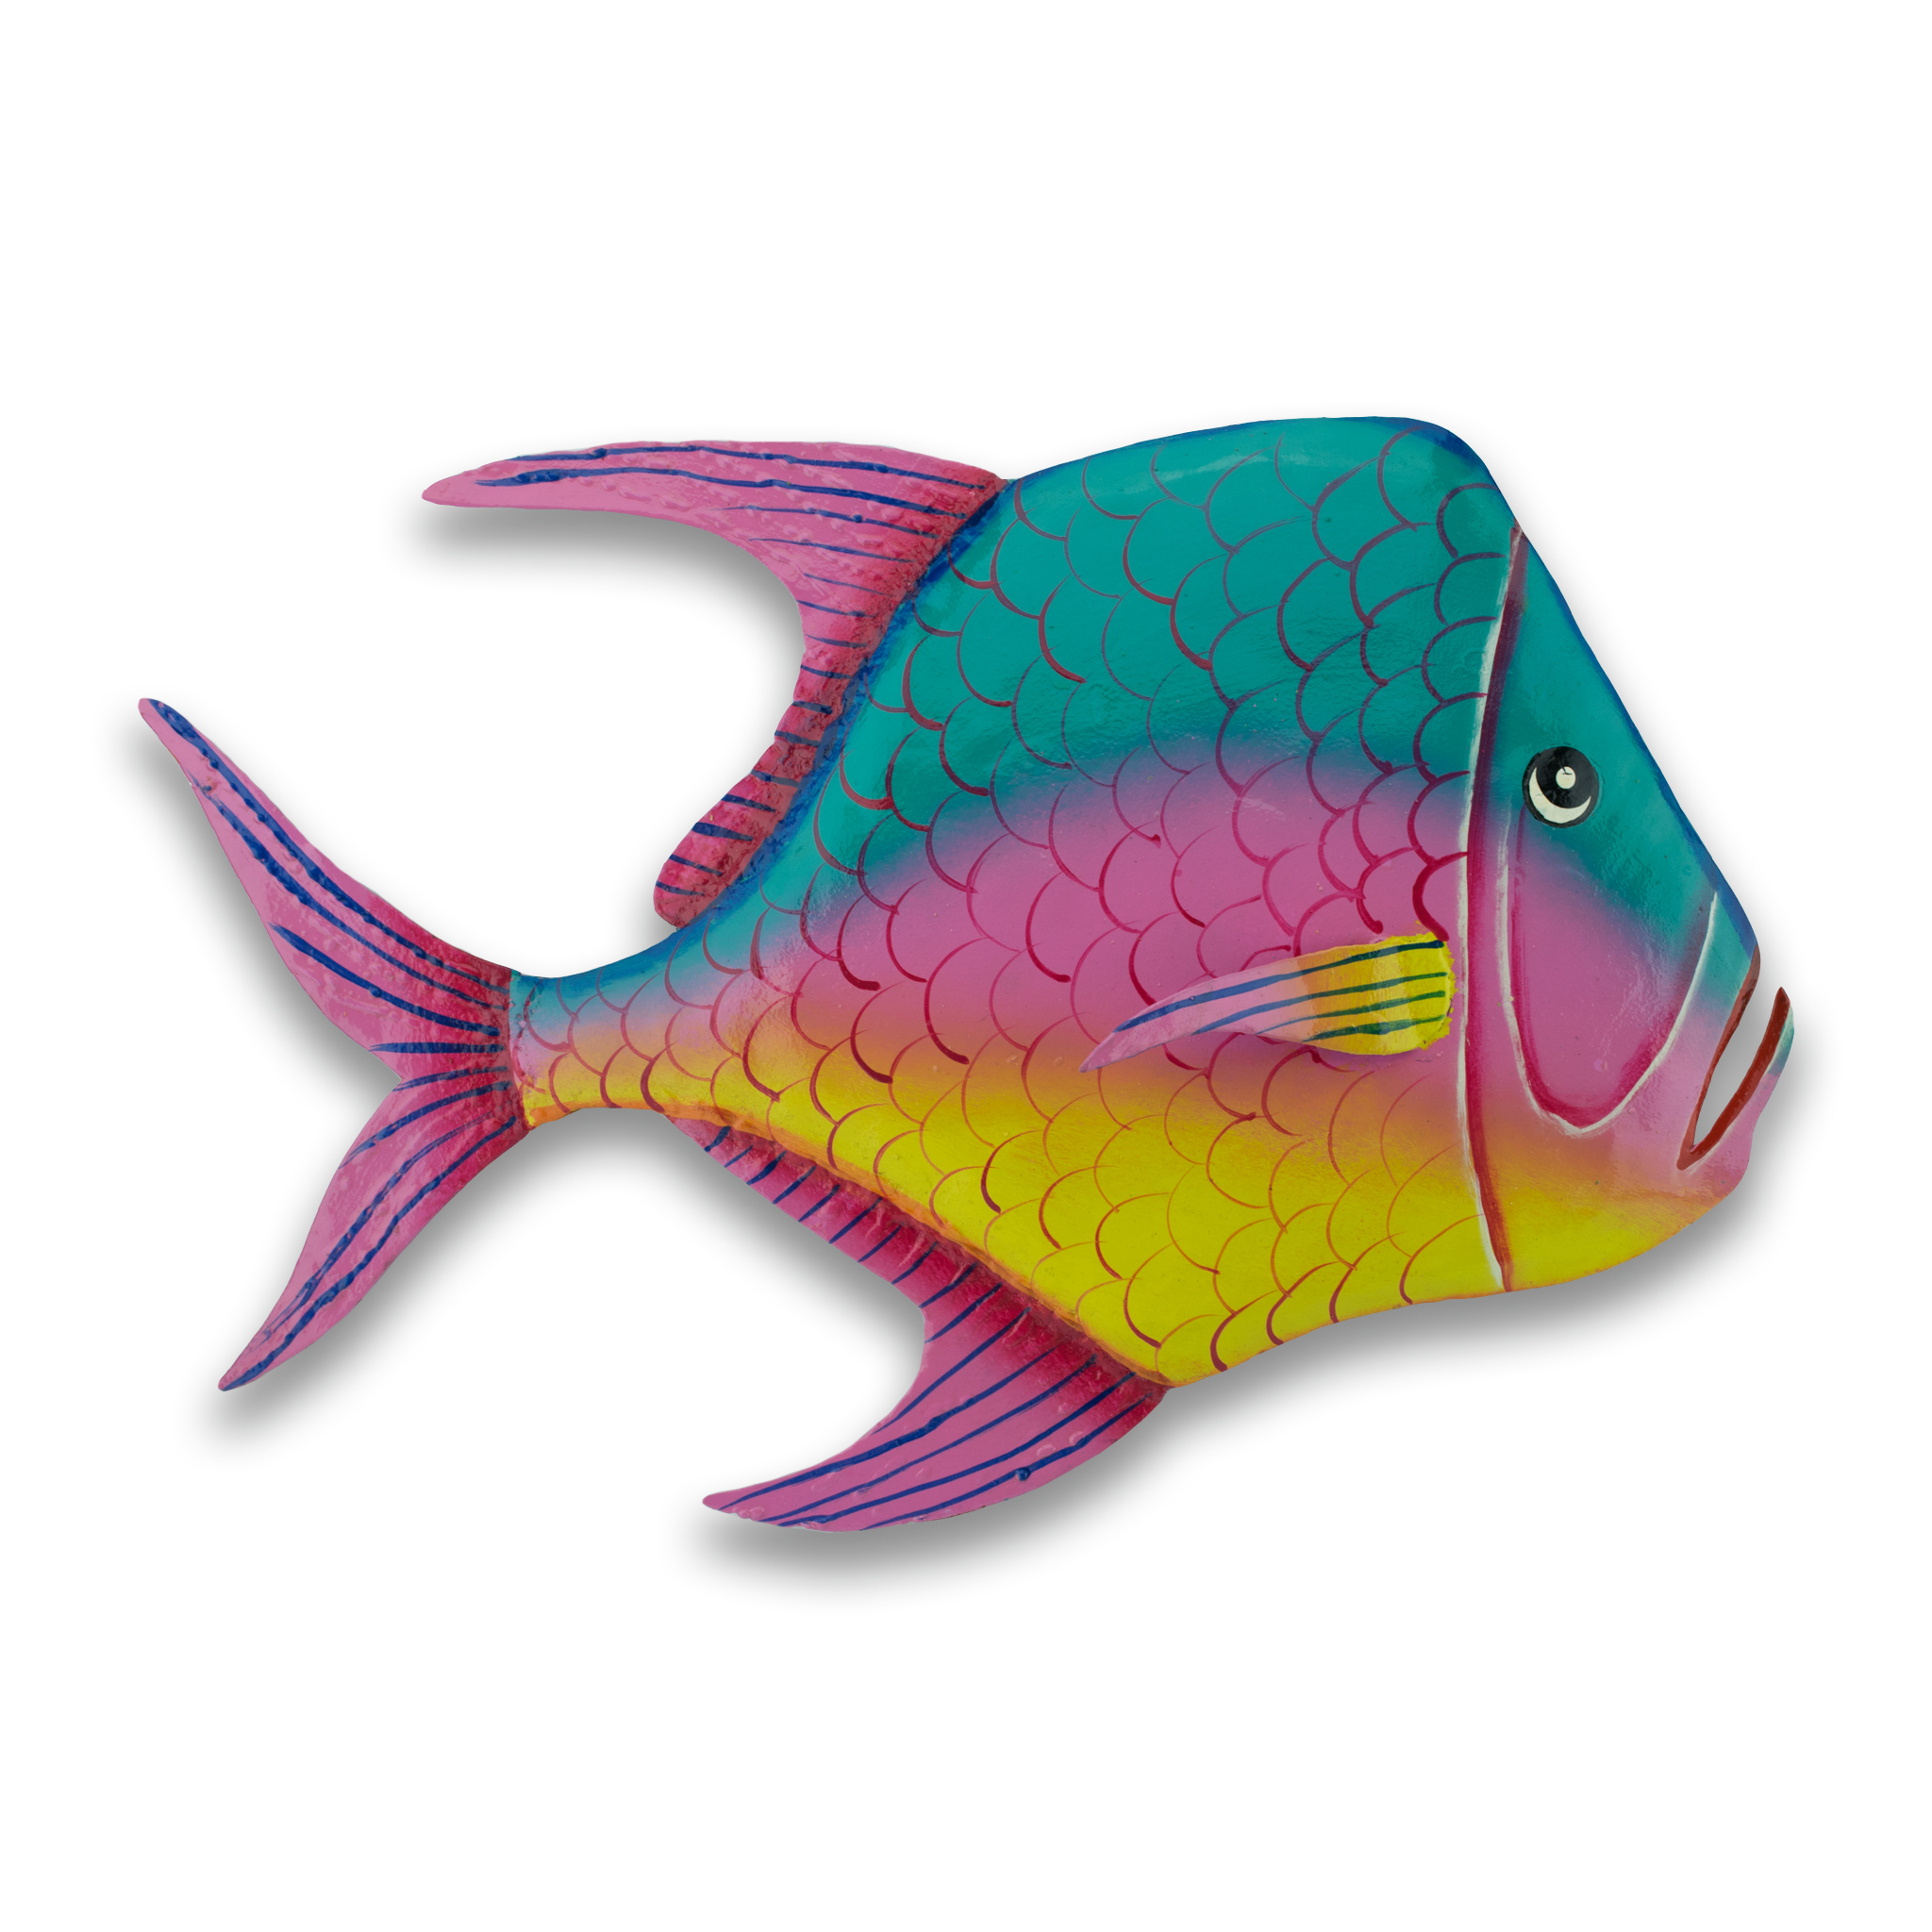 Km imports inc wholesale tropical decor home accents for Wholesale tropical fish